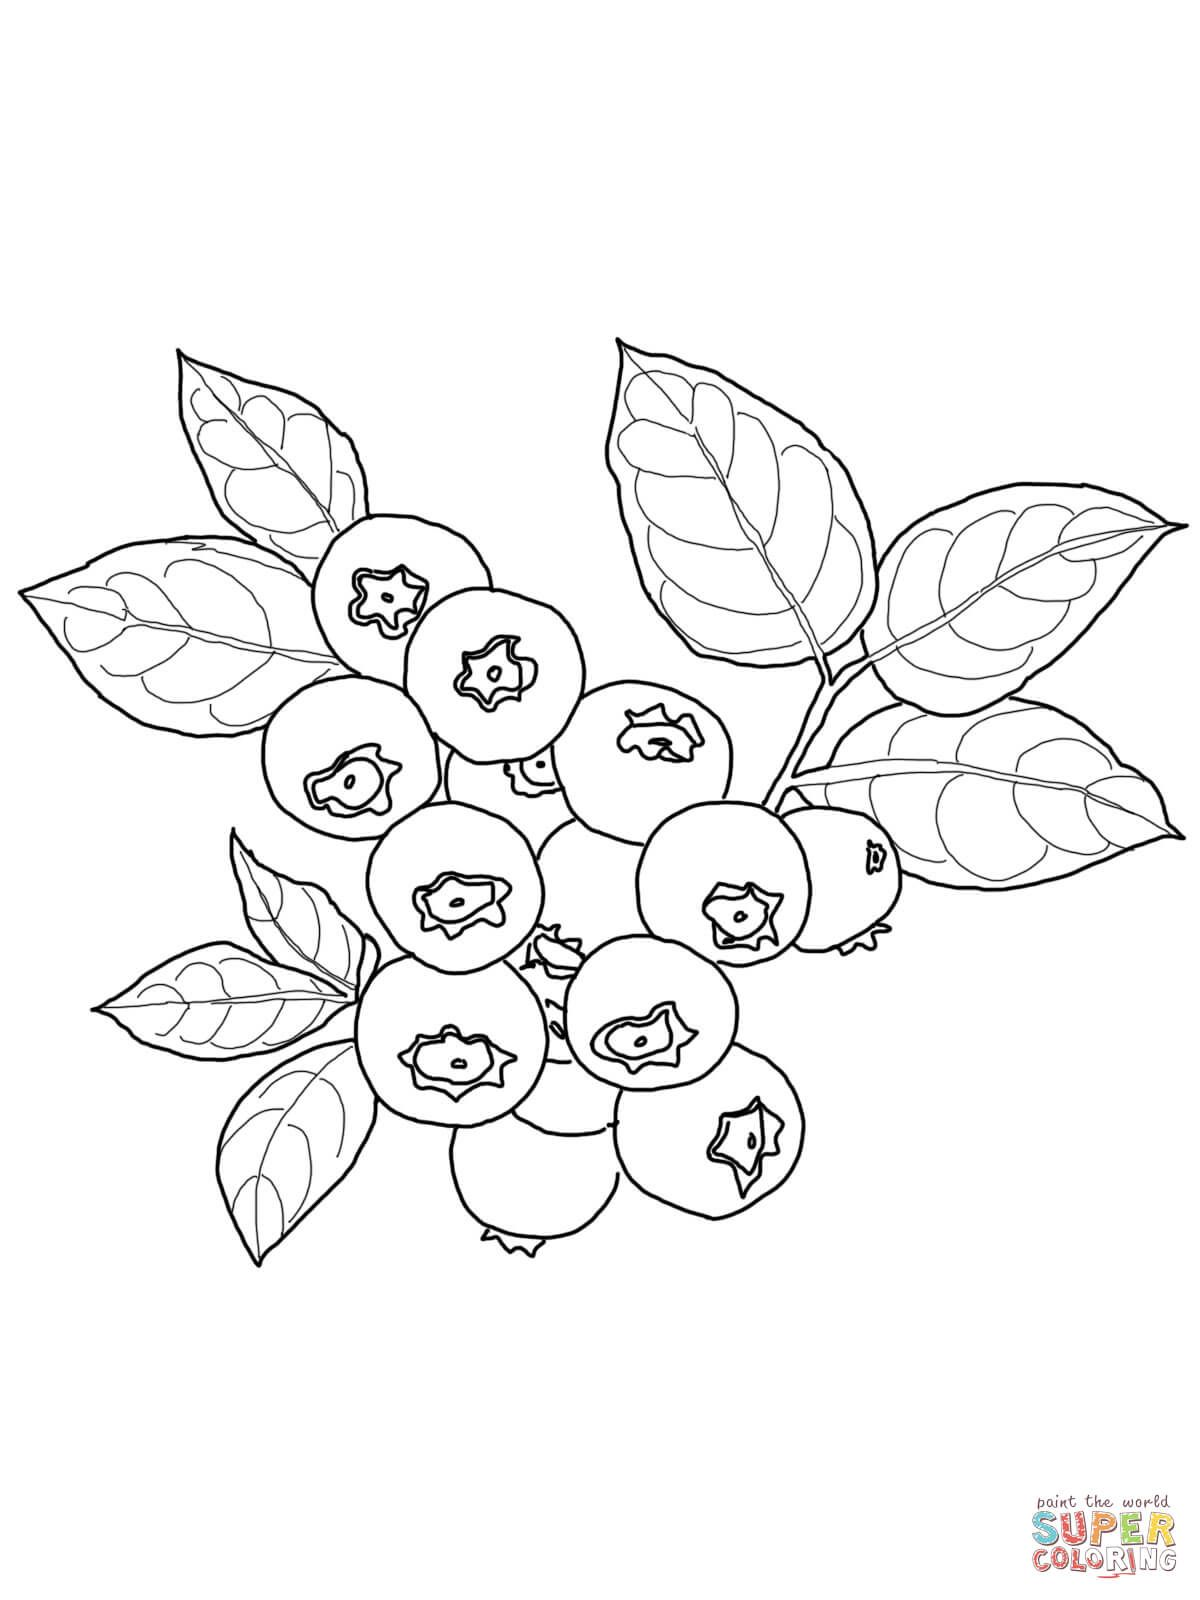 Blueberry coloring page from Blueberry category. Select